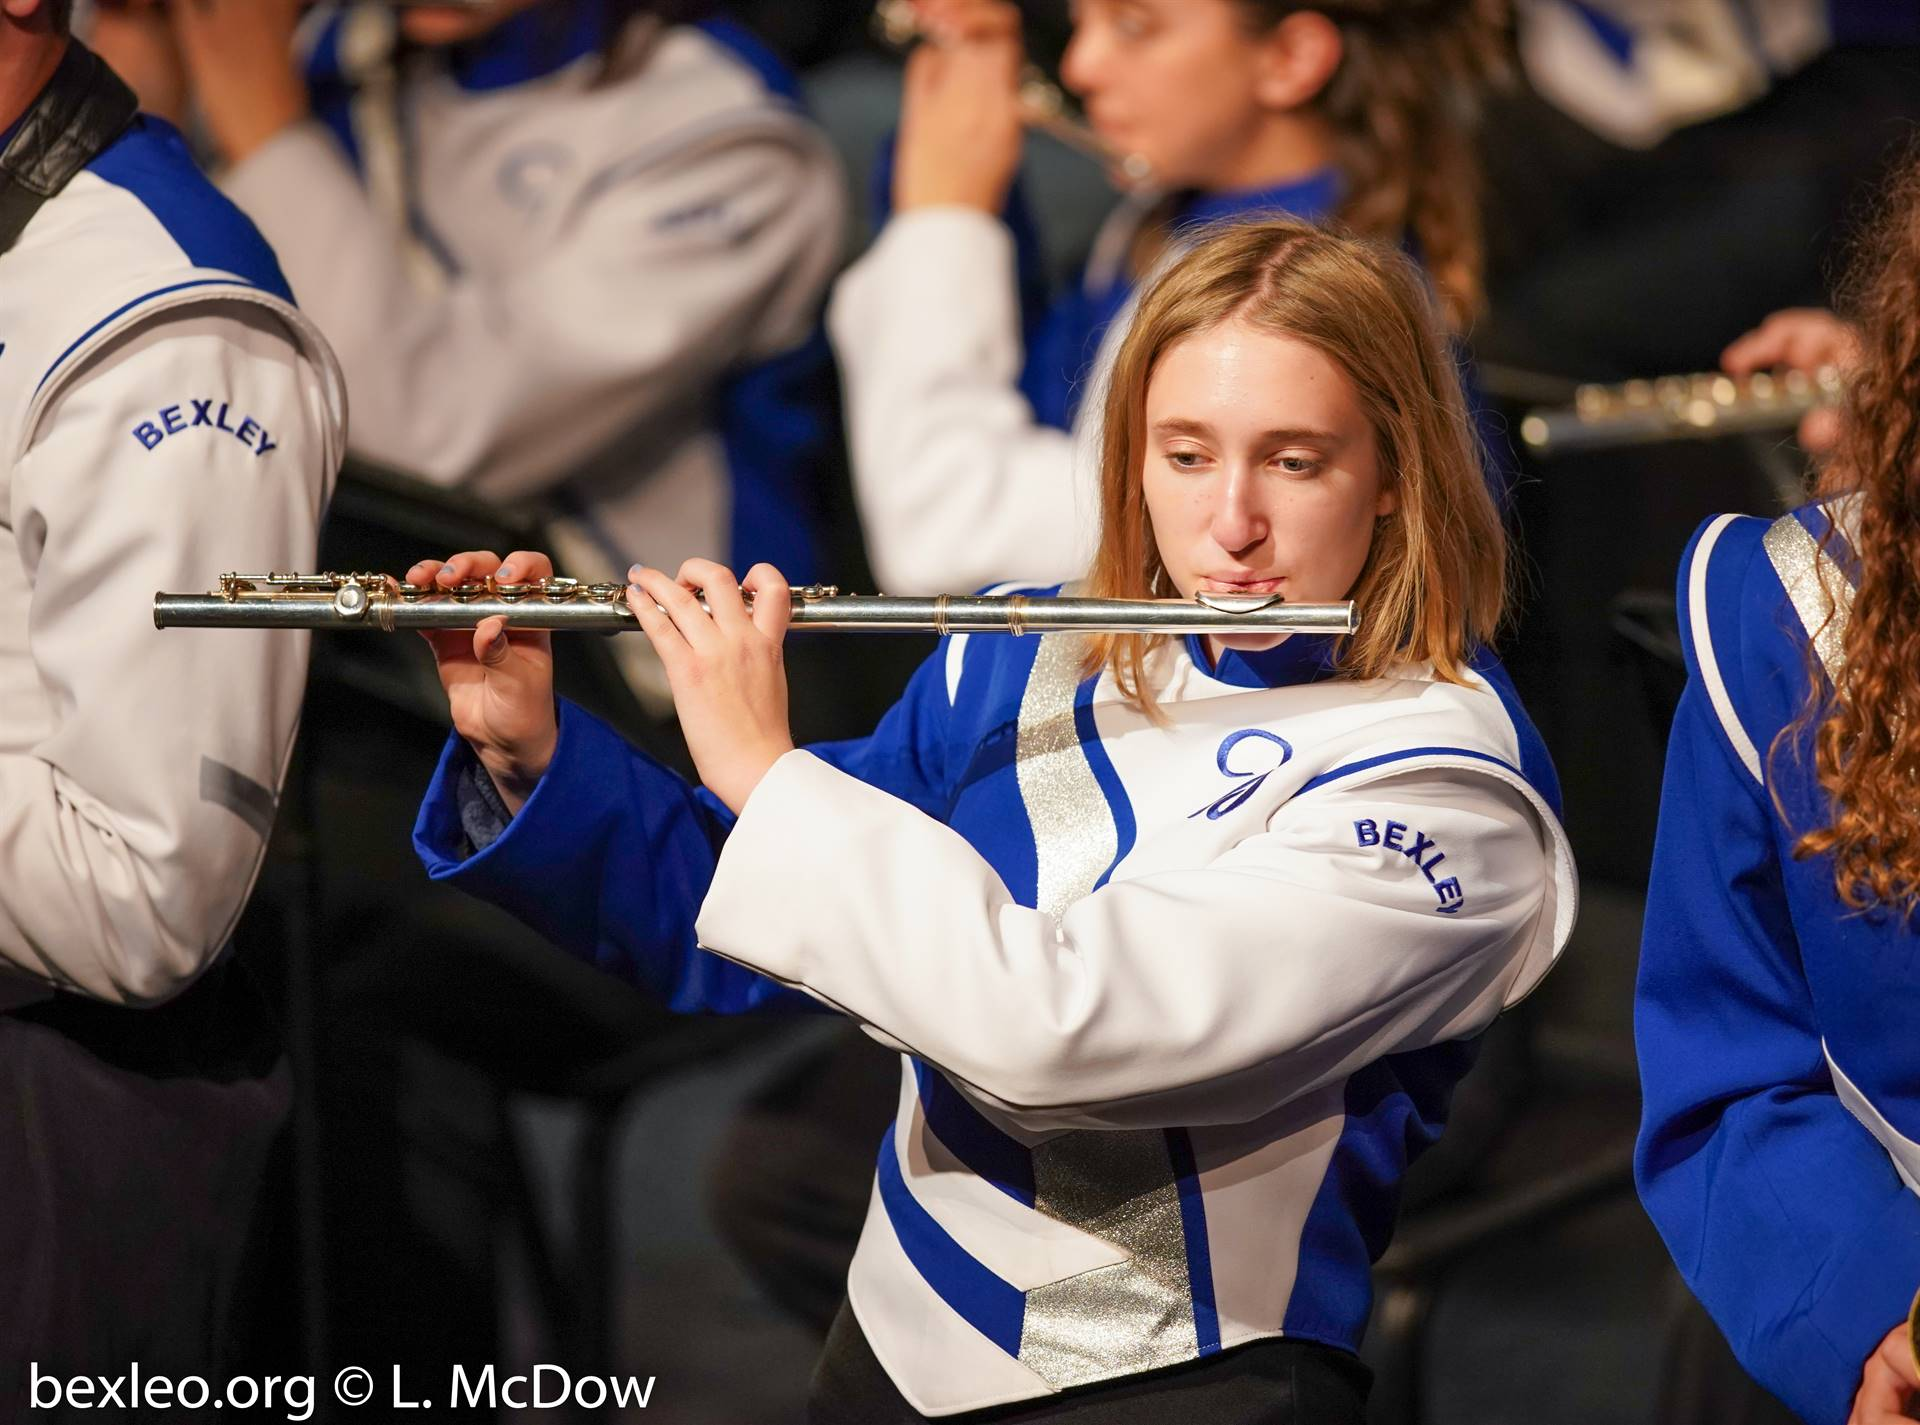 Marching Band Flute player performing on stage